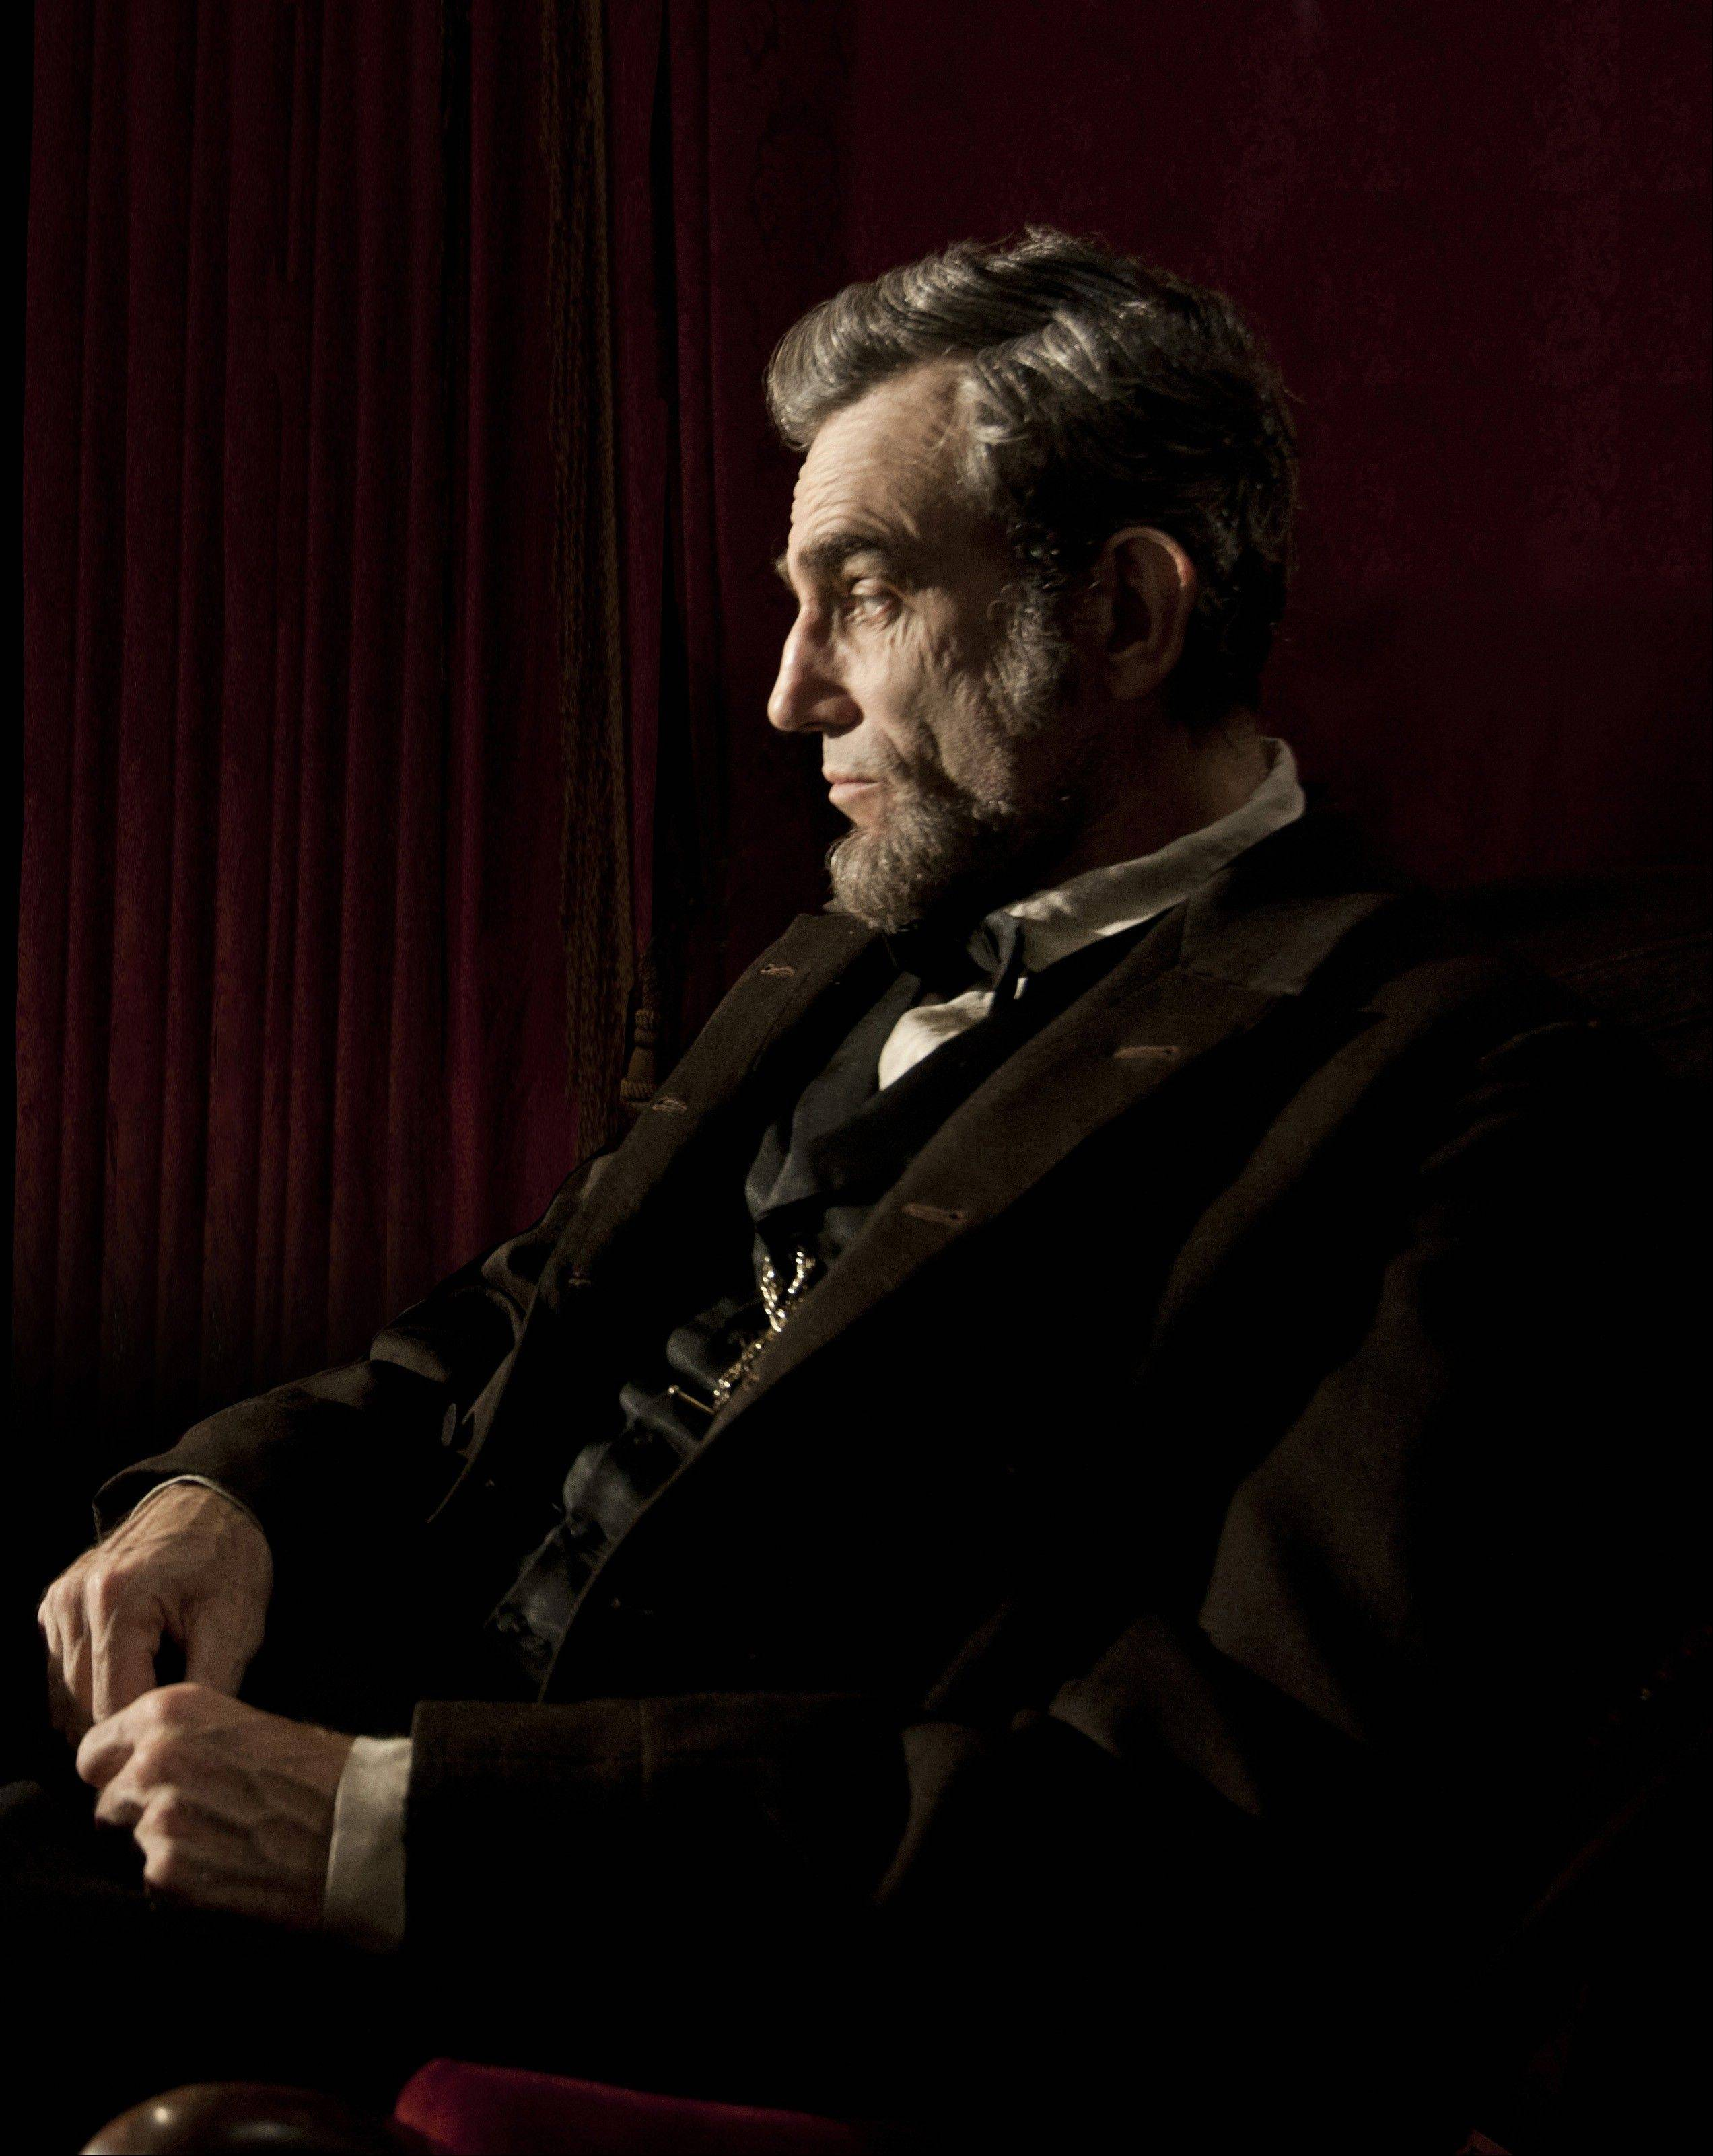 �Lincoln,� with Daniel Day-Lewis, leads the race for the British Academy Film Awards, with 10 nominations including best picture and best actor.